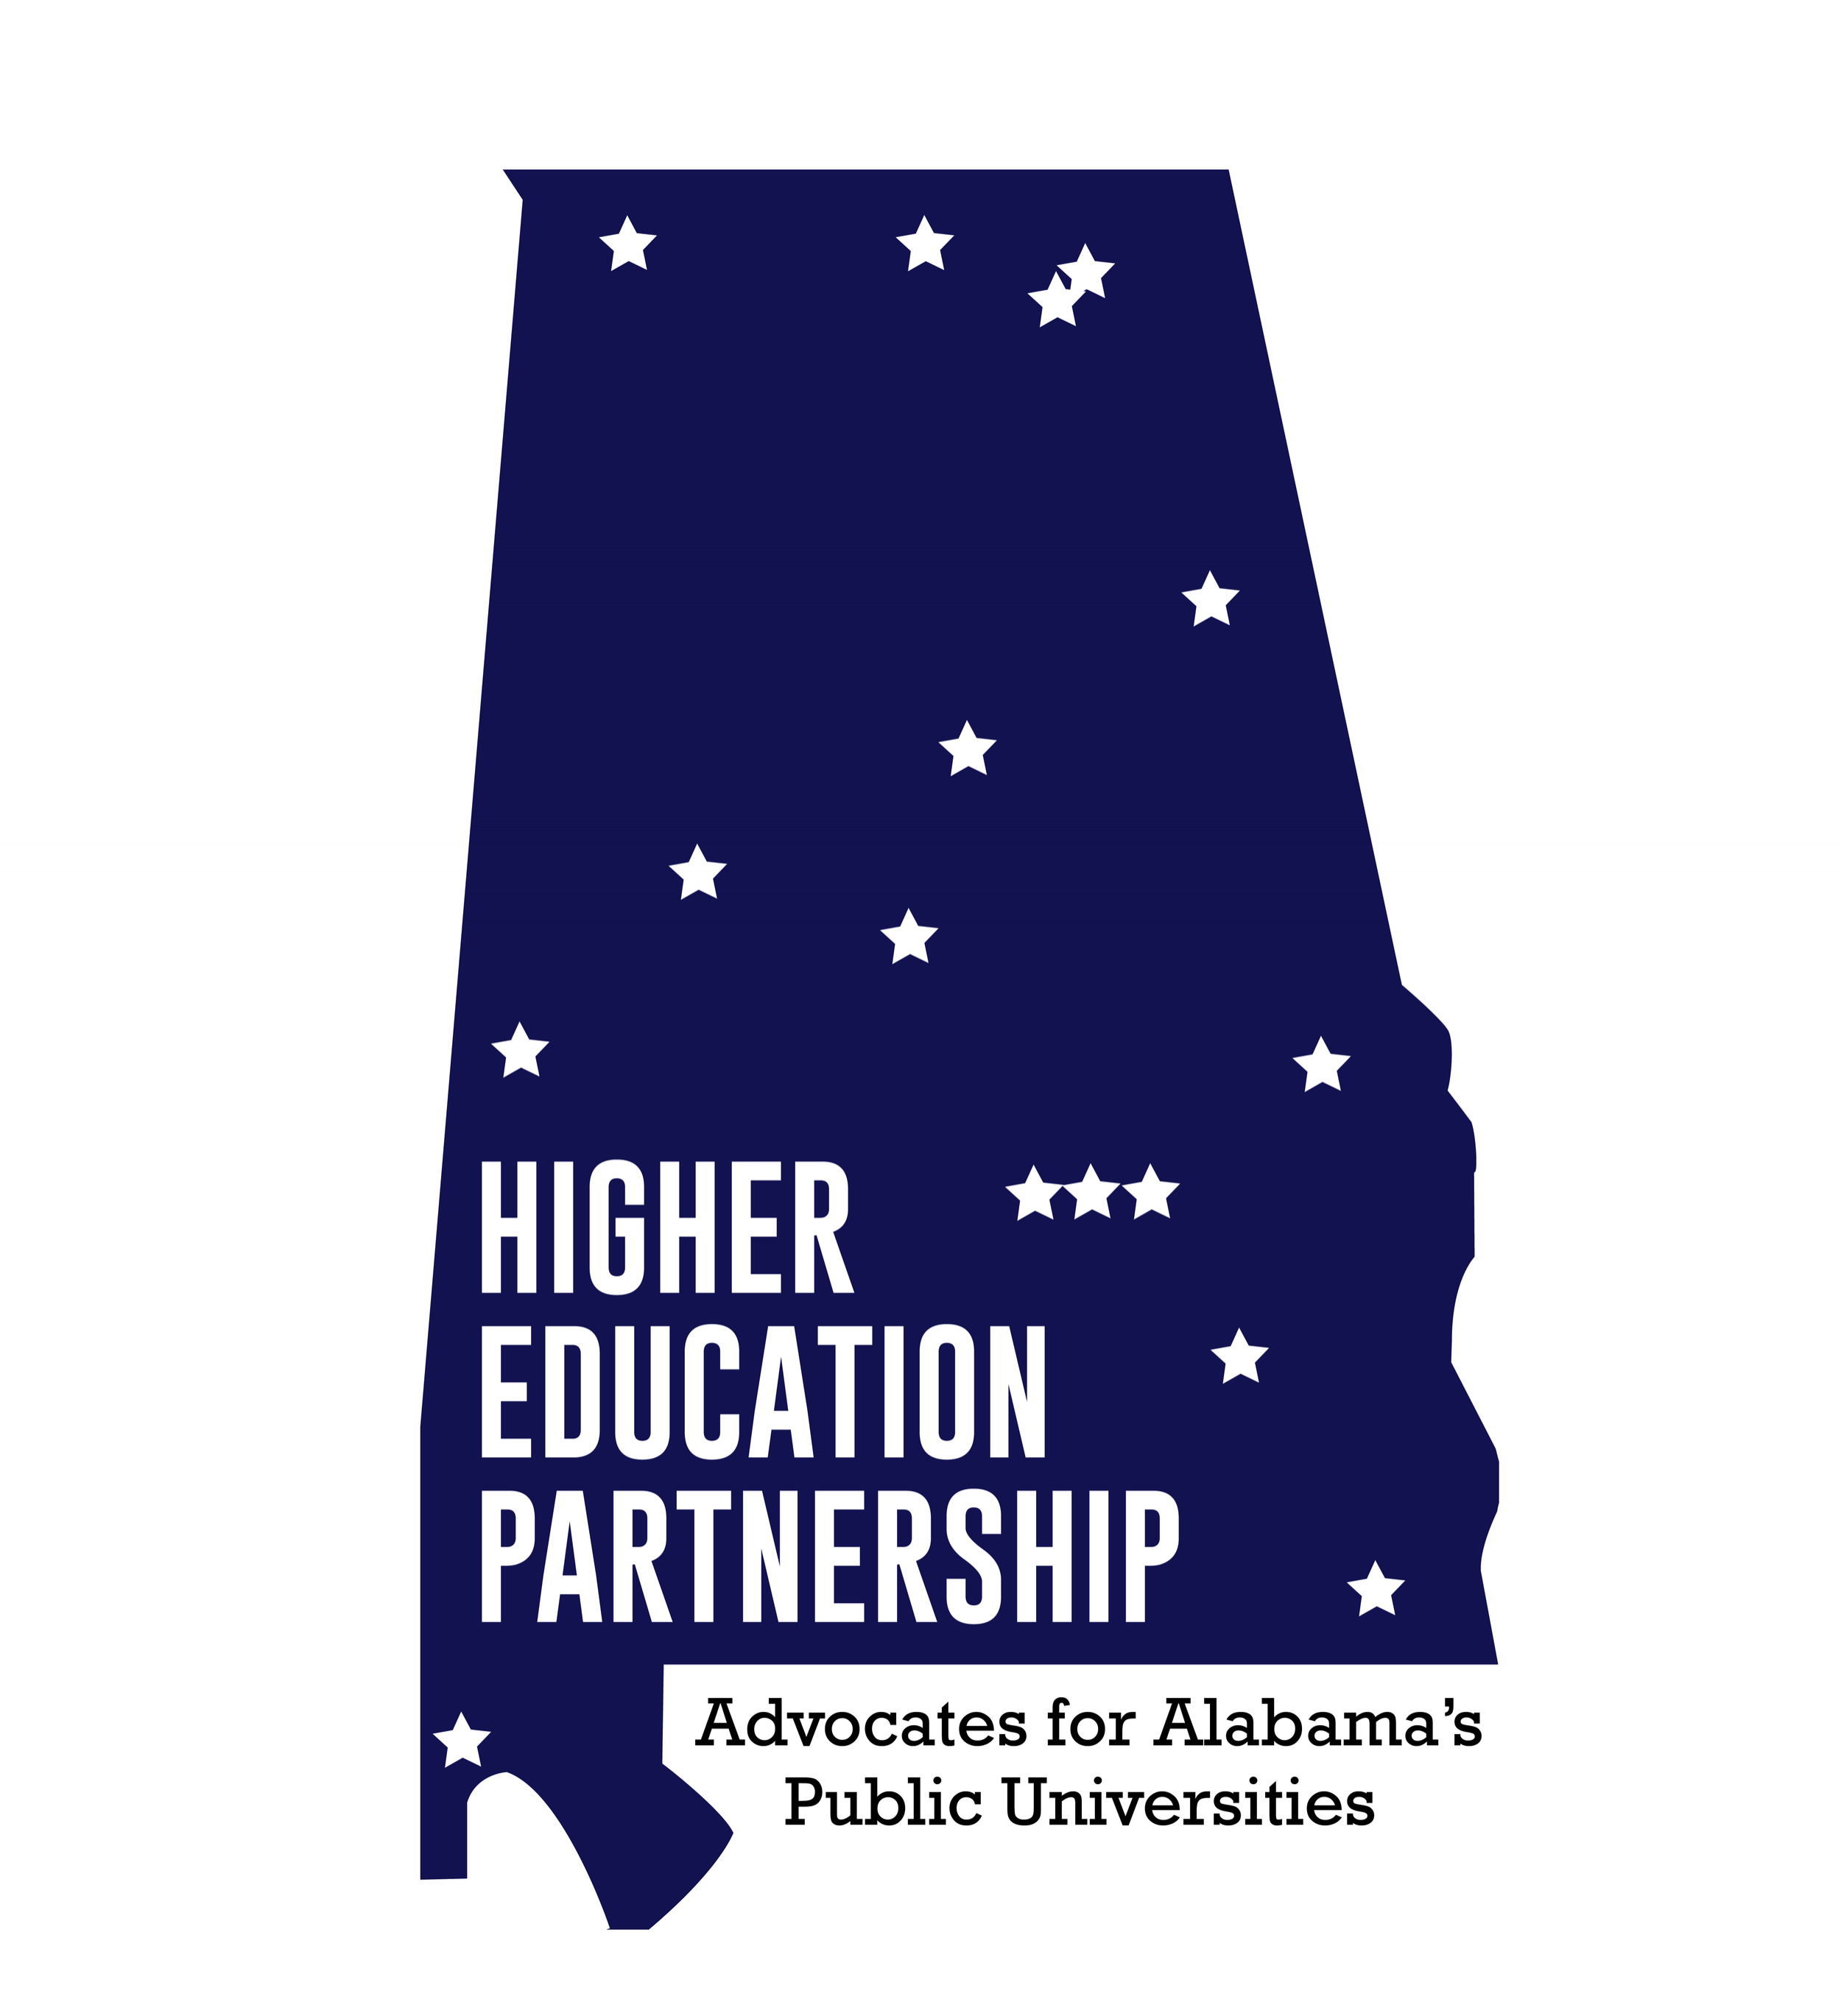 - The Higher Education Partnership of Alabama, or HEP, is an organization dedicated to raising awareness of the importance of higher education in improving the lives of Alabamians and headquartered in Montgomery. This advocacy group aims to organize, unite, and recruit advocates of higher education in order to make sure that government policies reflect the importance of higher education in Alabama.